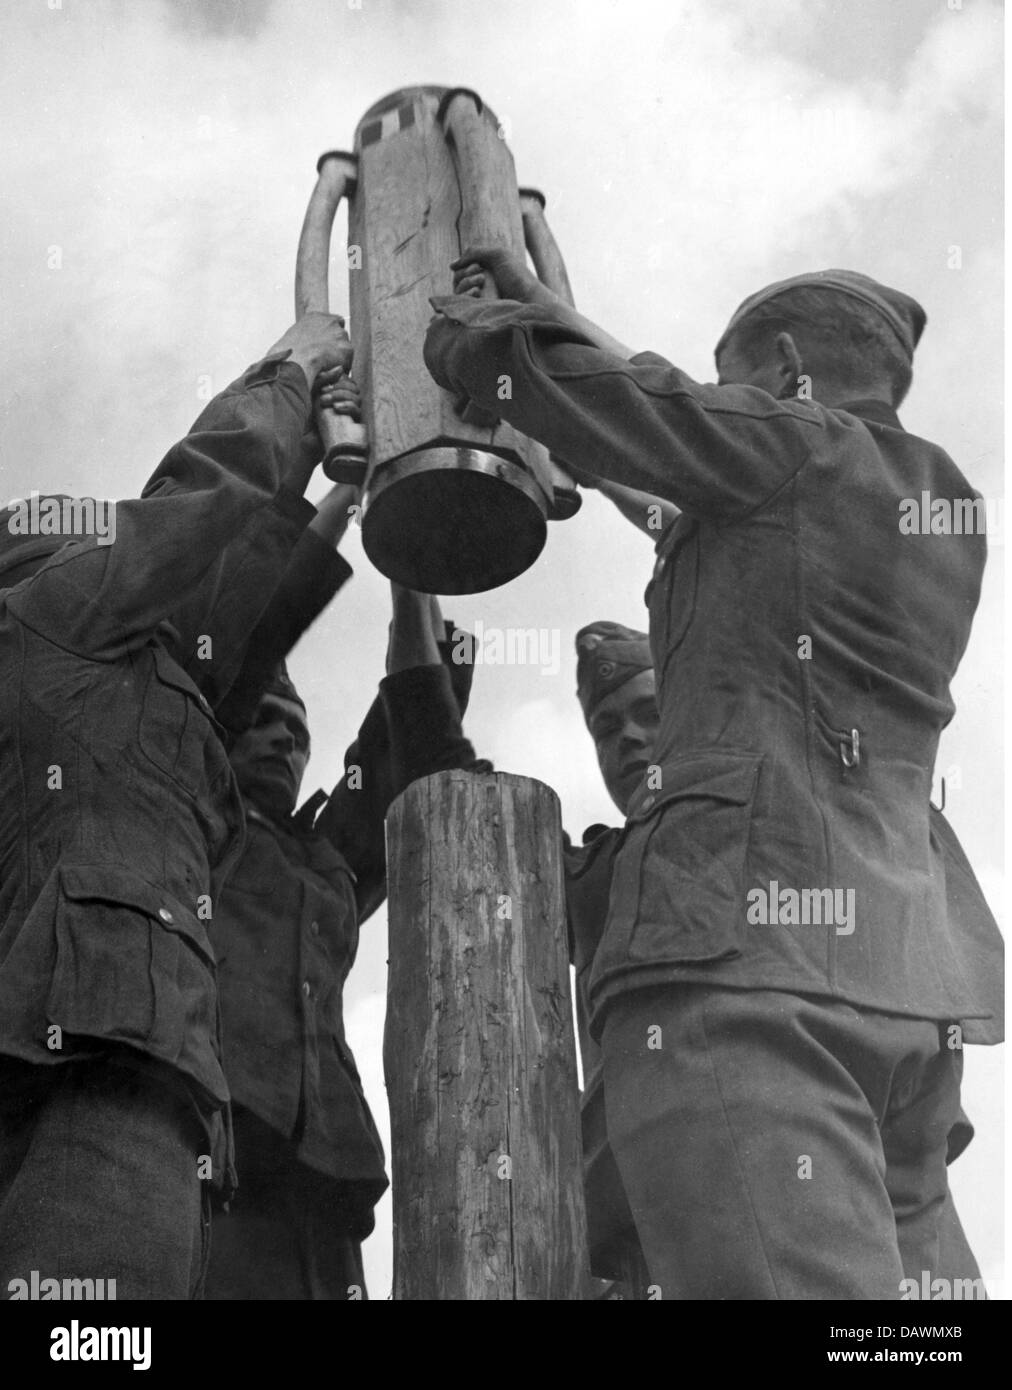 Nazism / National Socialism, military, Wehrmacht, army, training, manoeuvre at the Oder river, military engineers - Stock Image